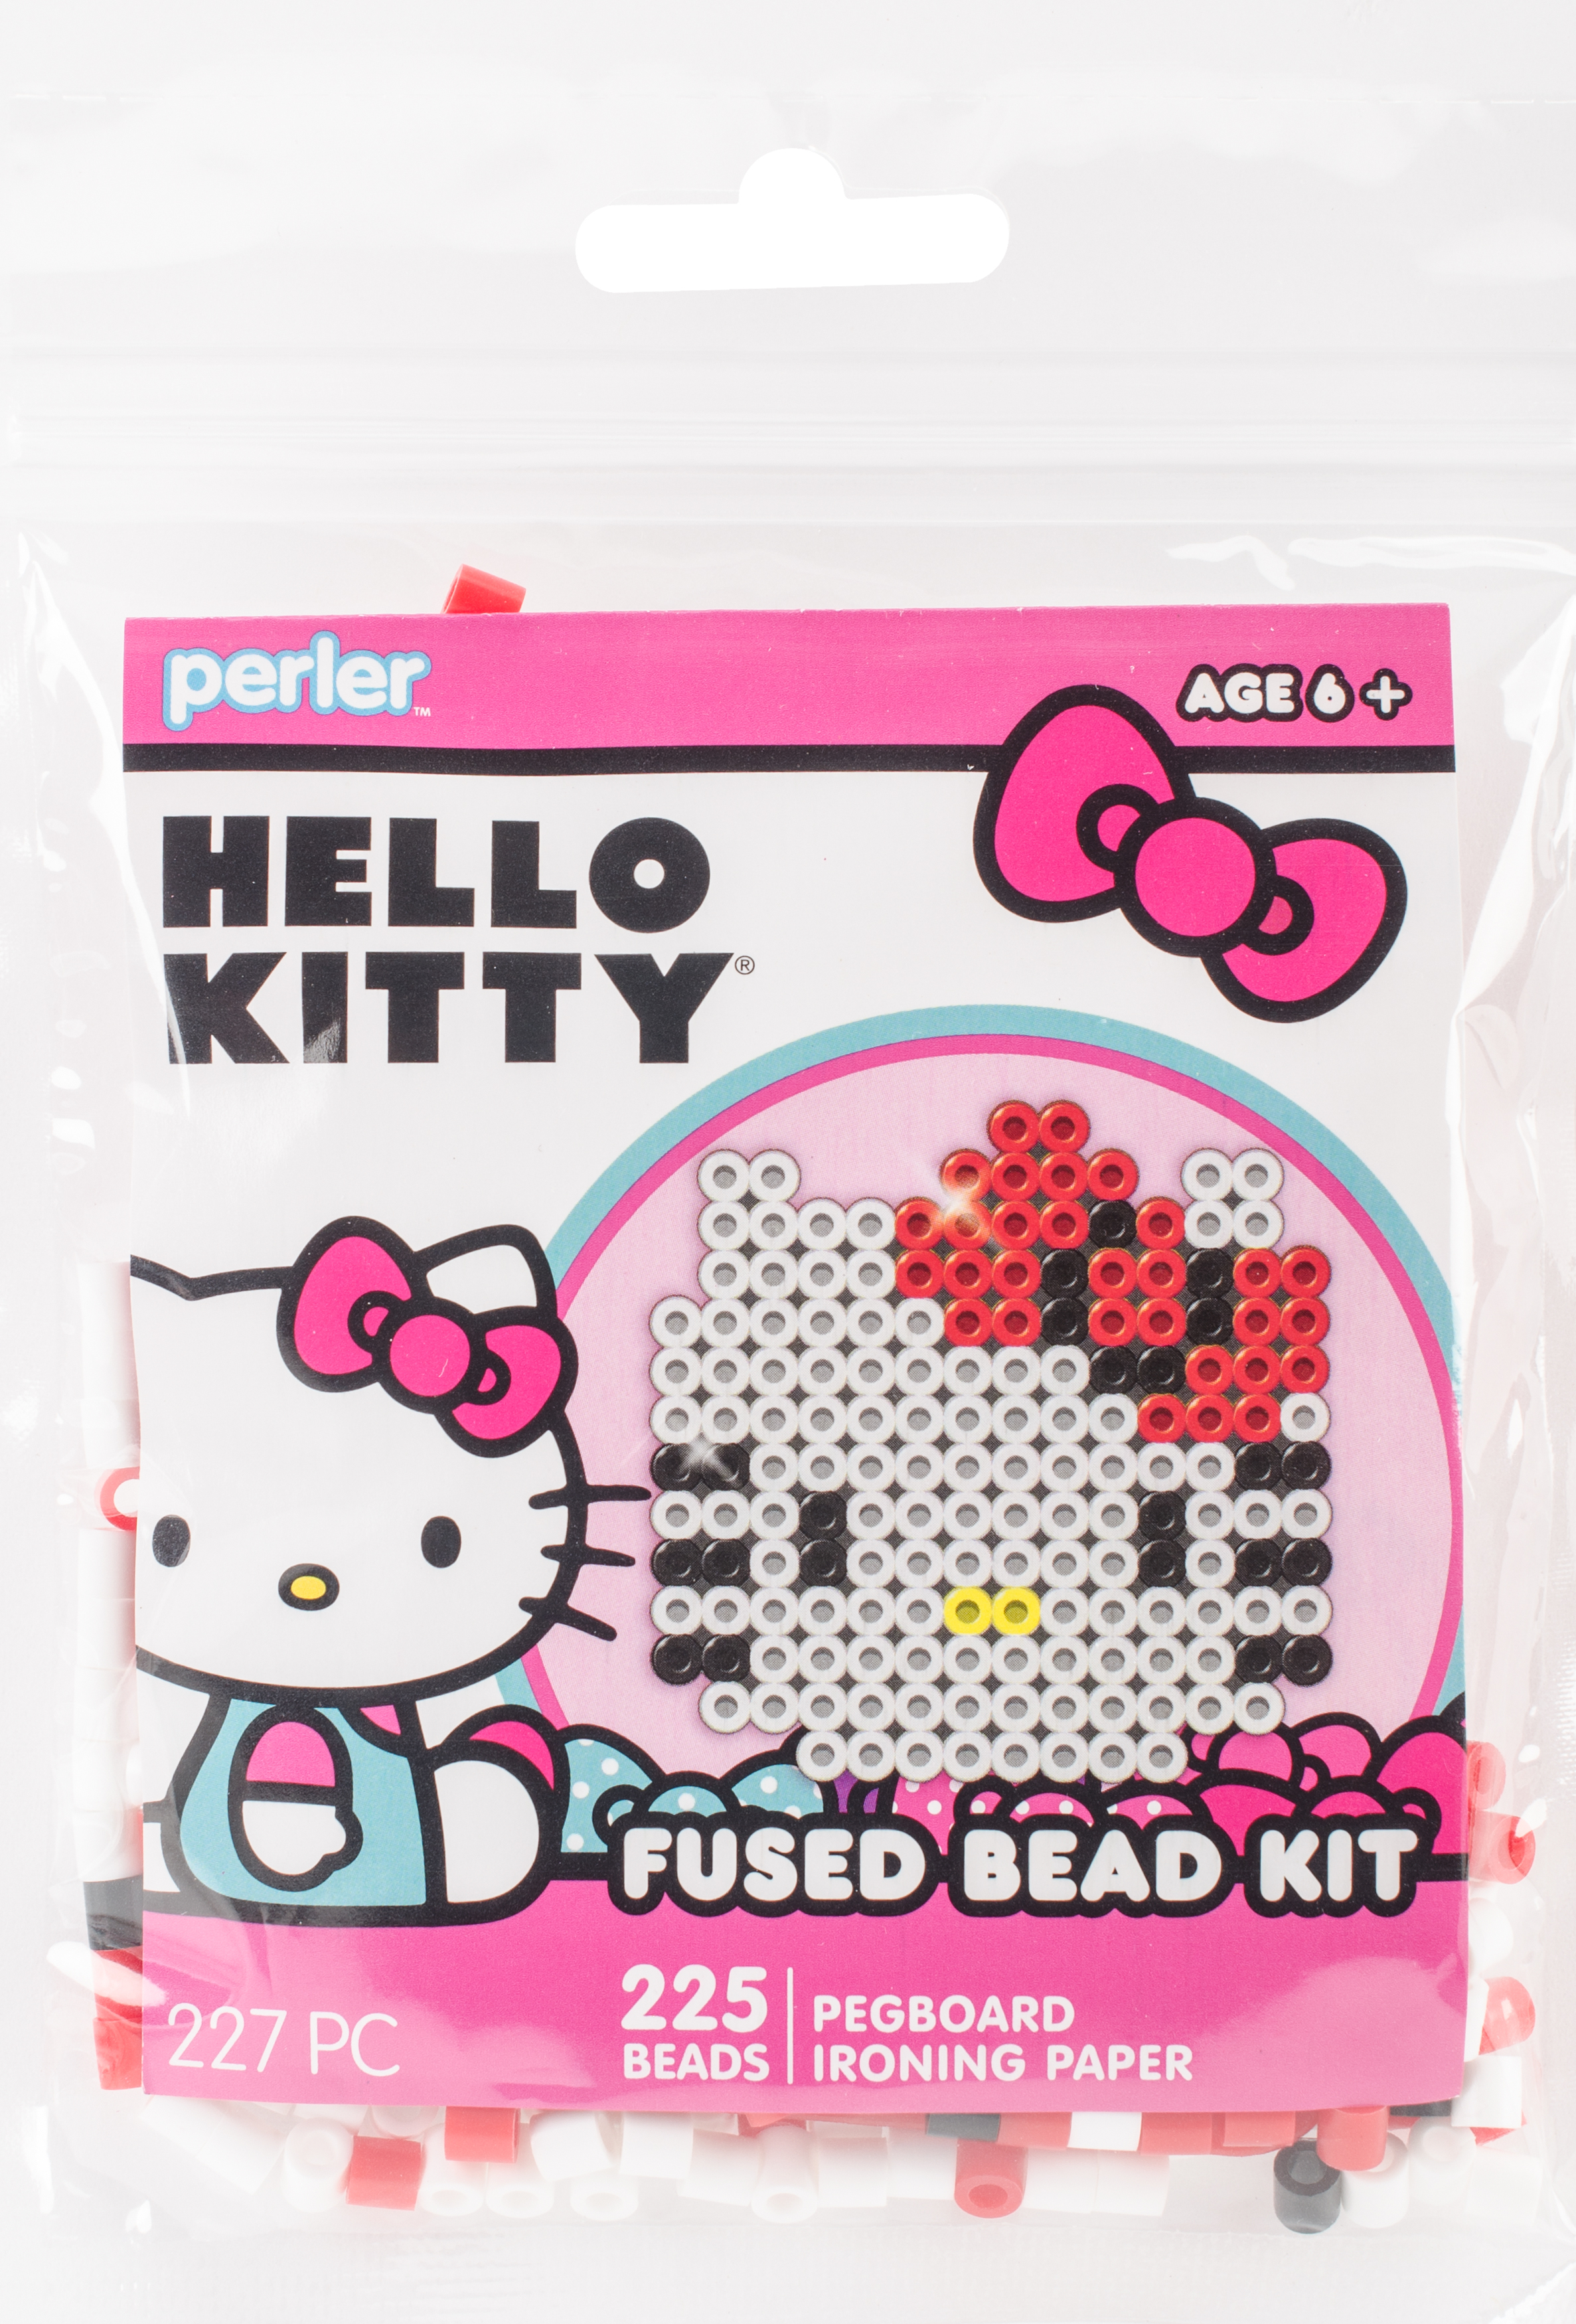 Perler Fused Bead Trial Kit-Hello Kitty Face